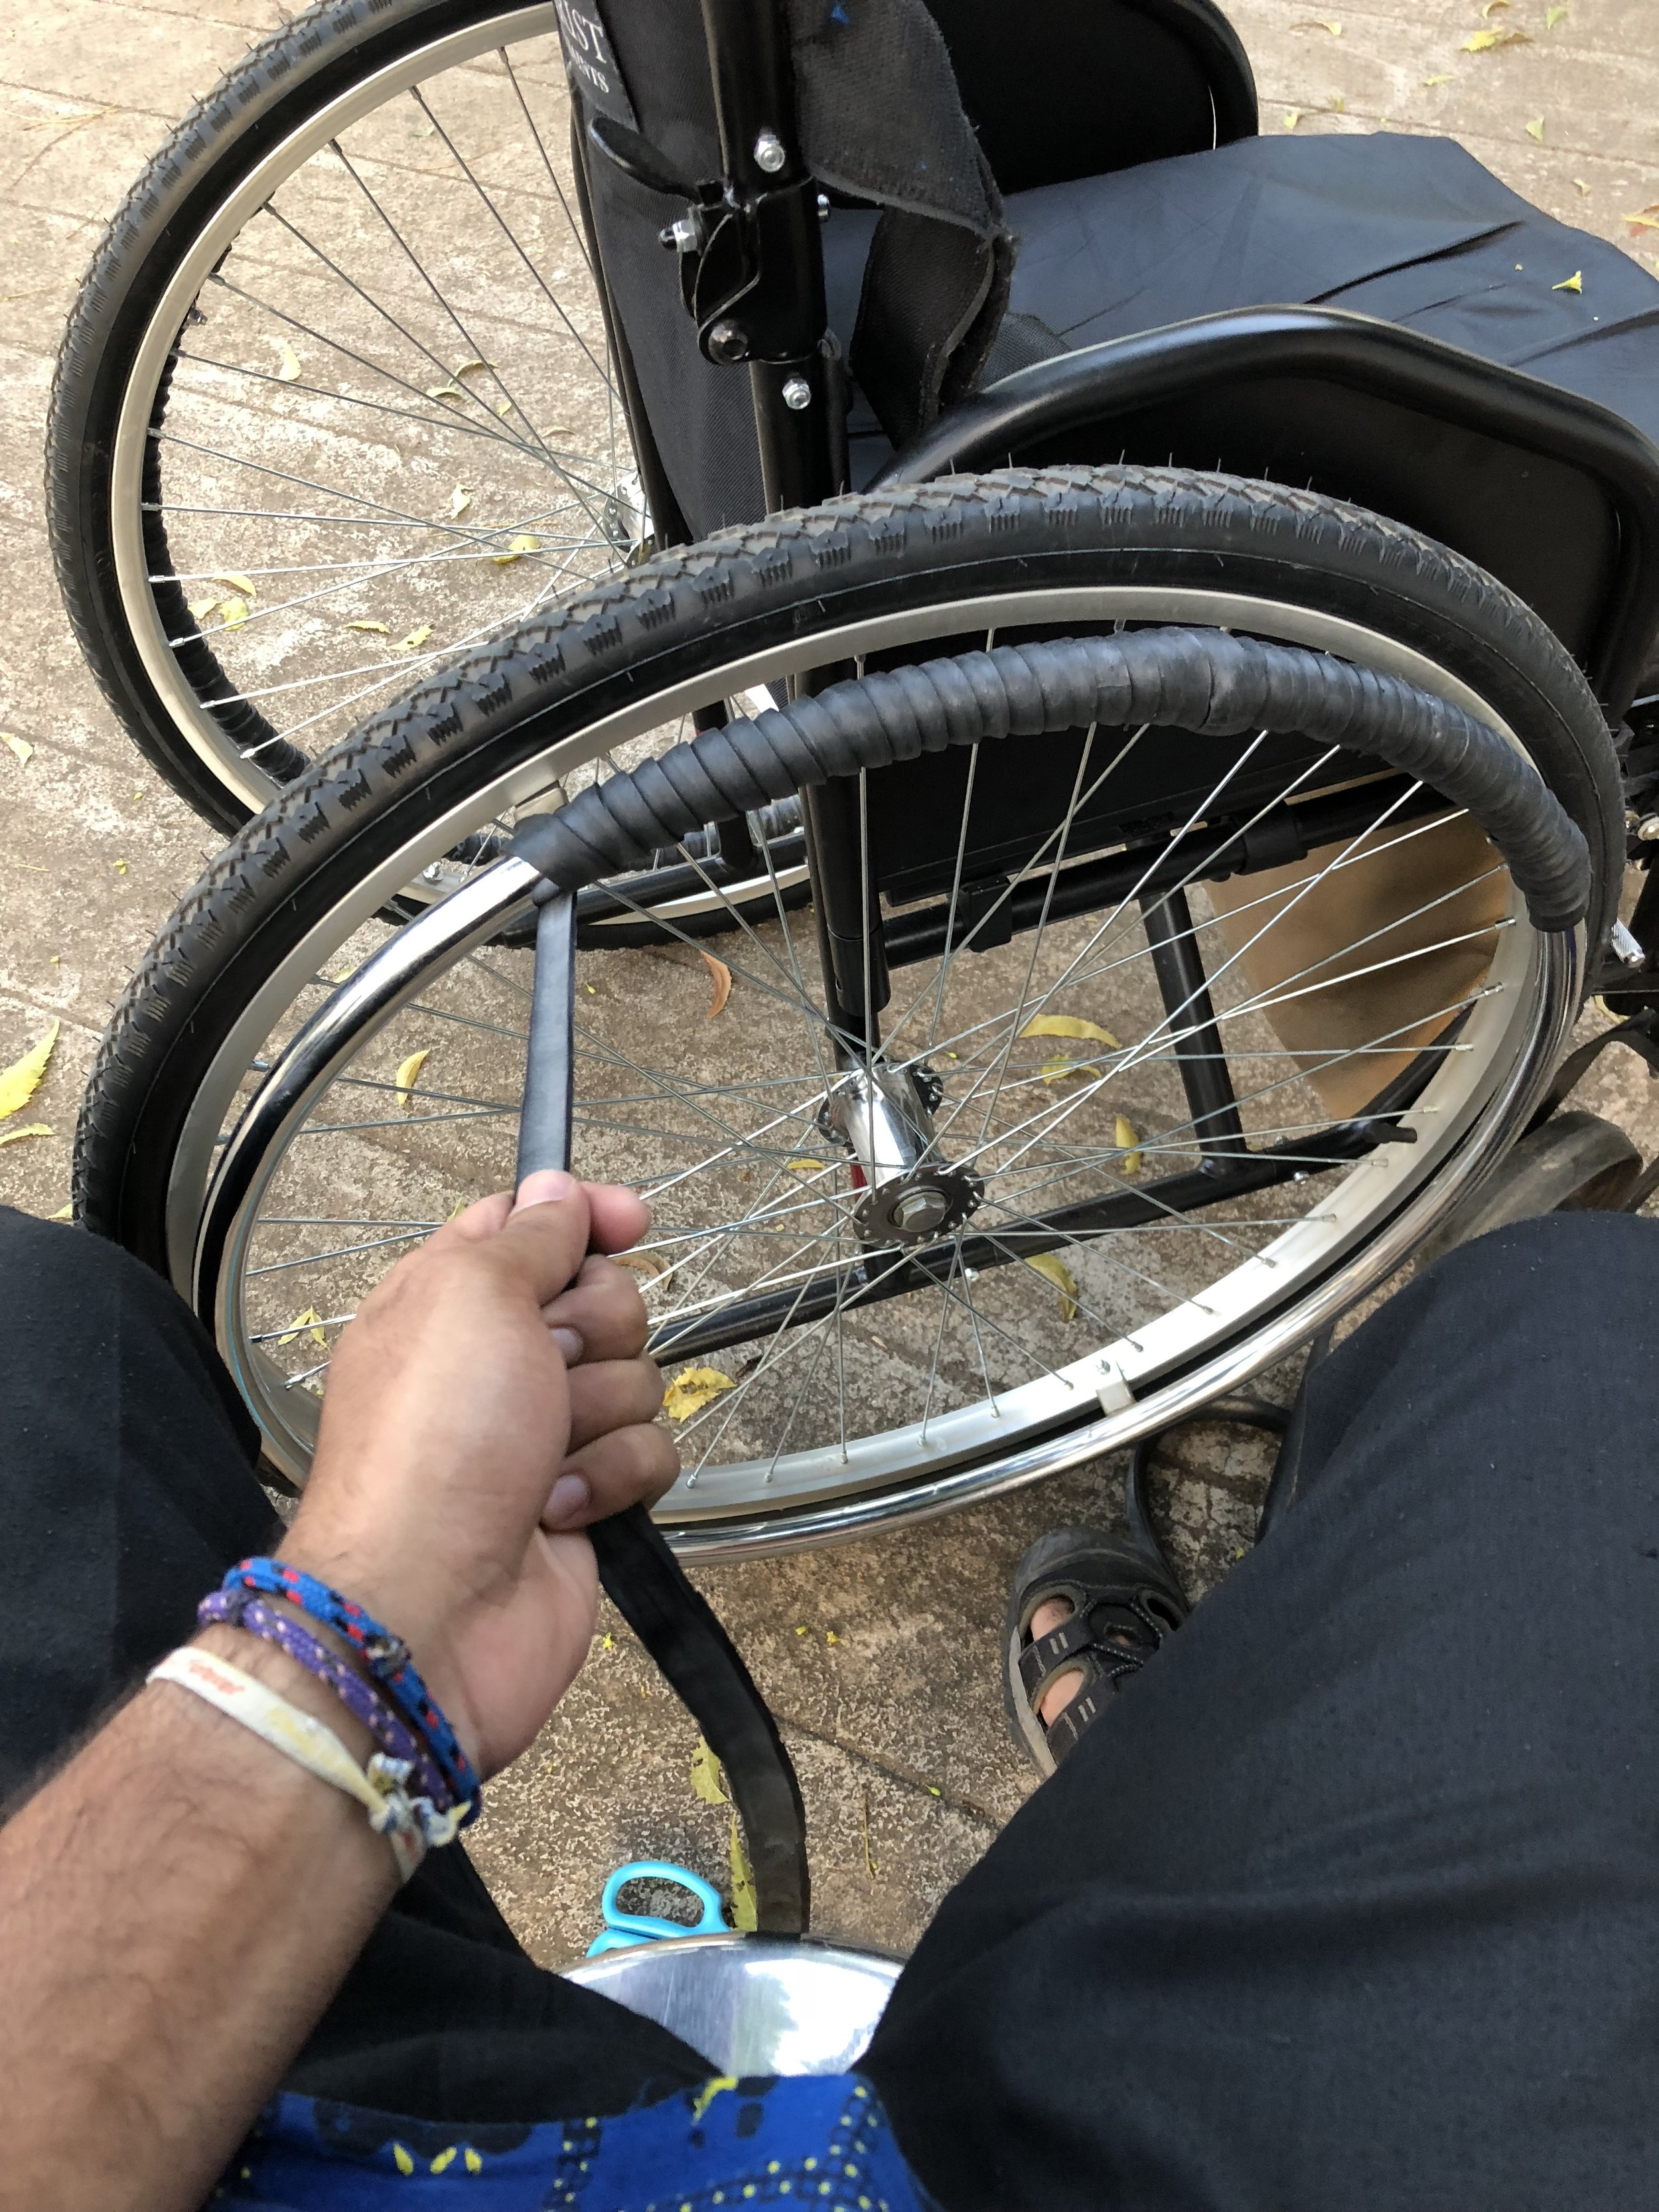 Wheelchair adaptation using old bike tire inner tubes to increase grip while self-propelling